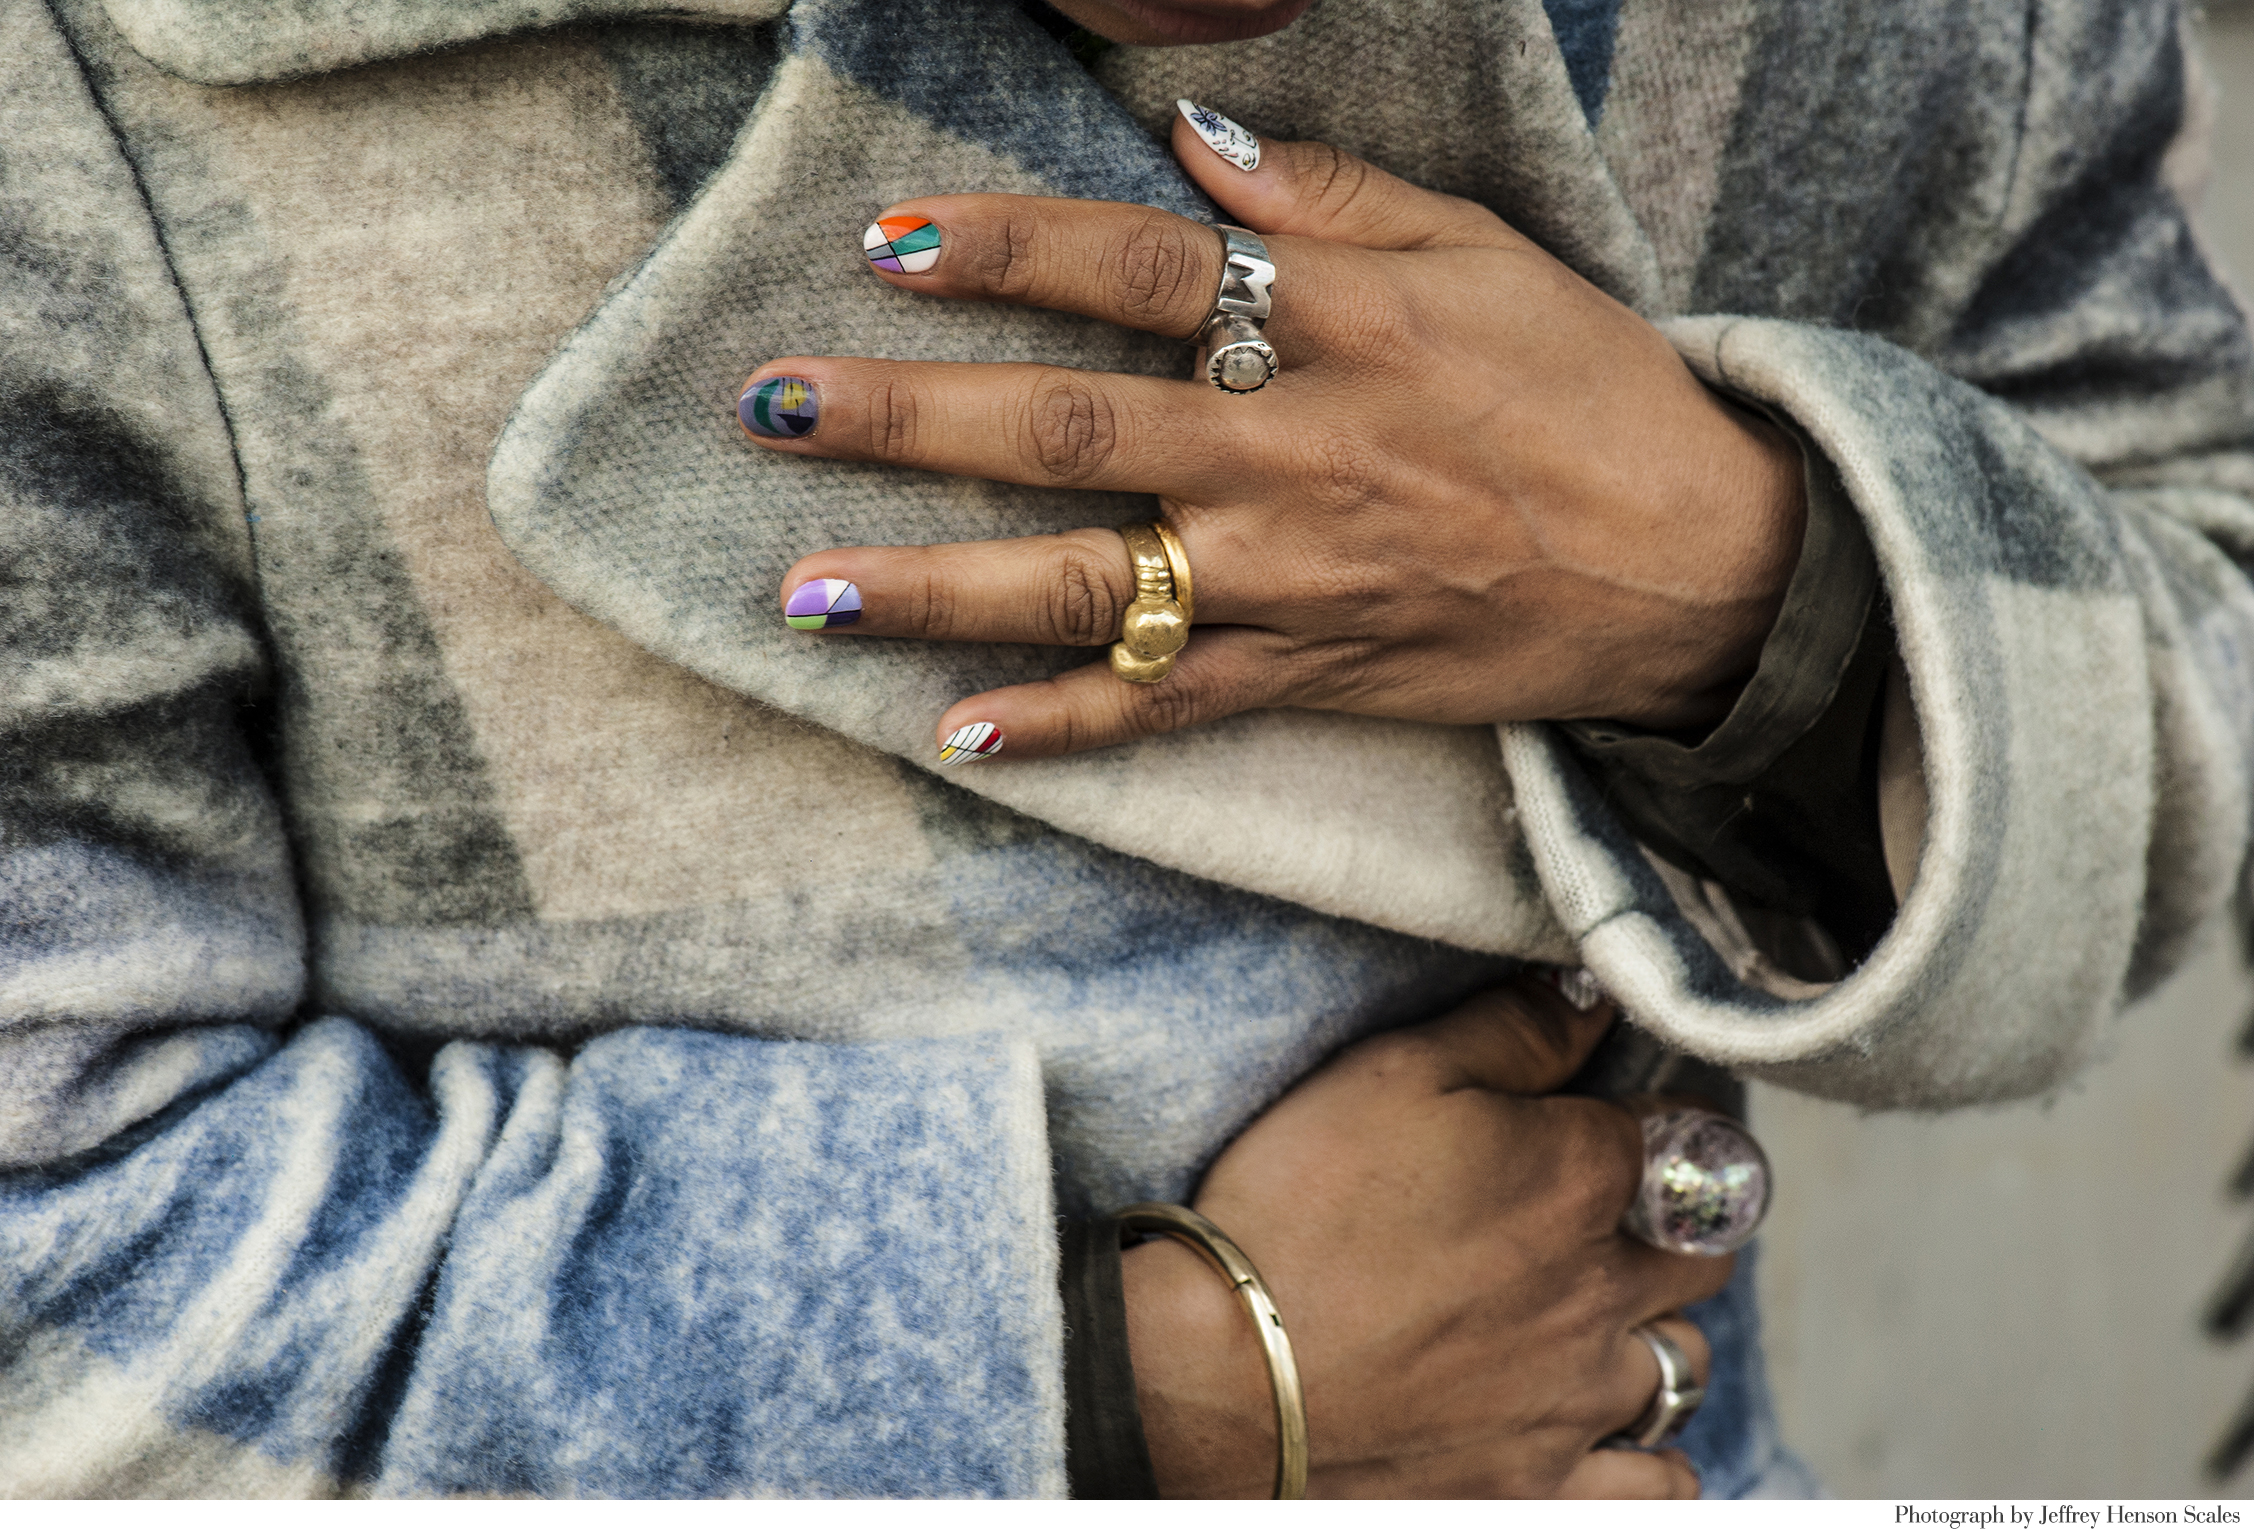 The New York Times_The  Look_ Style Section_Taking New York by the Hand_Manicures_Nail_Art_Fashion_Jenny Bui_Bling Nails_Rebecca_Pietri_Rebecca Pietri_Writer_Stylist_Casting_Jeffery Henson Scales_Photographer_Eve Lyons_Editor_Mengly Hernadez .JPG